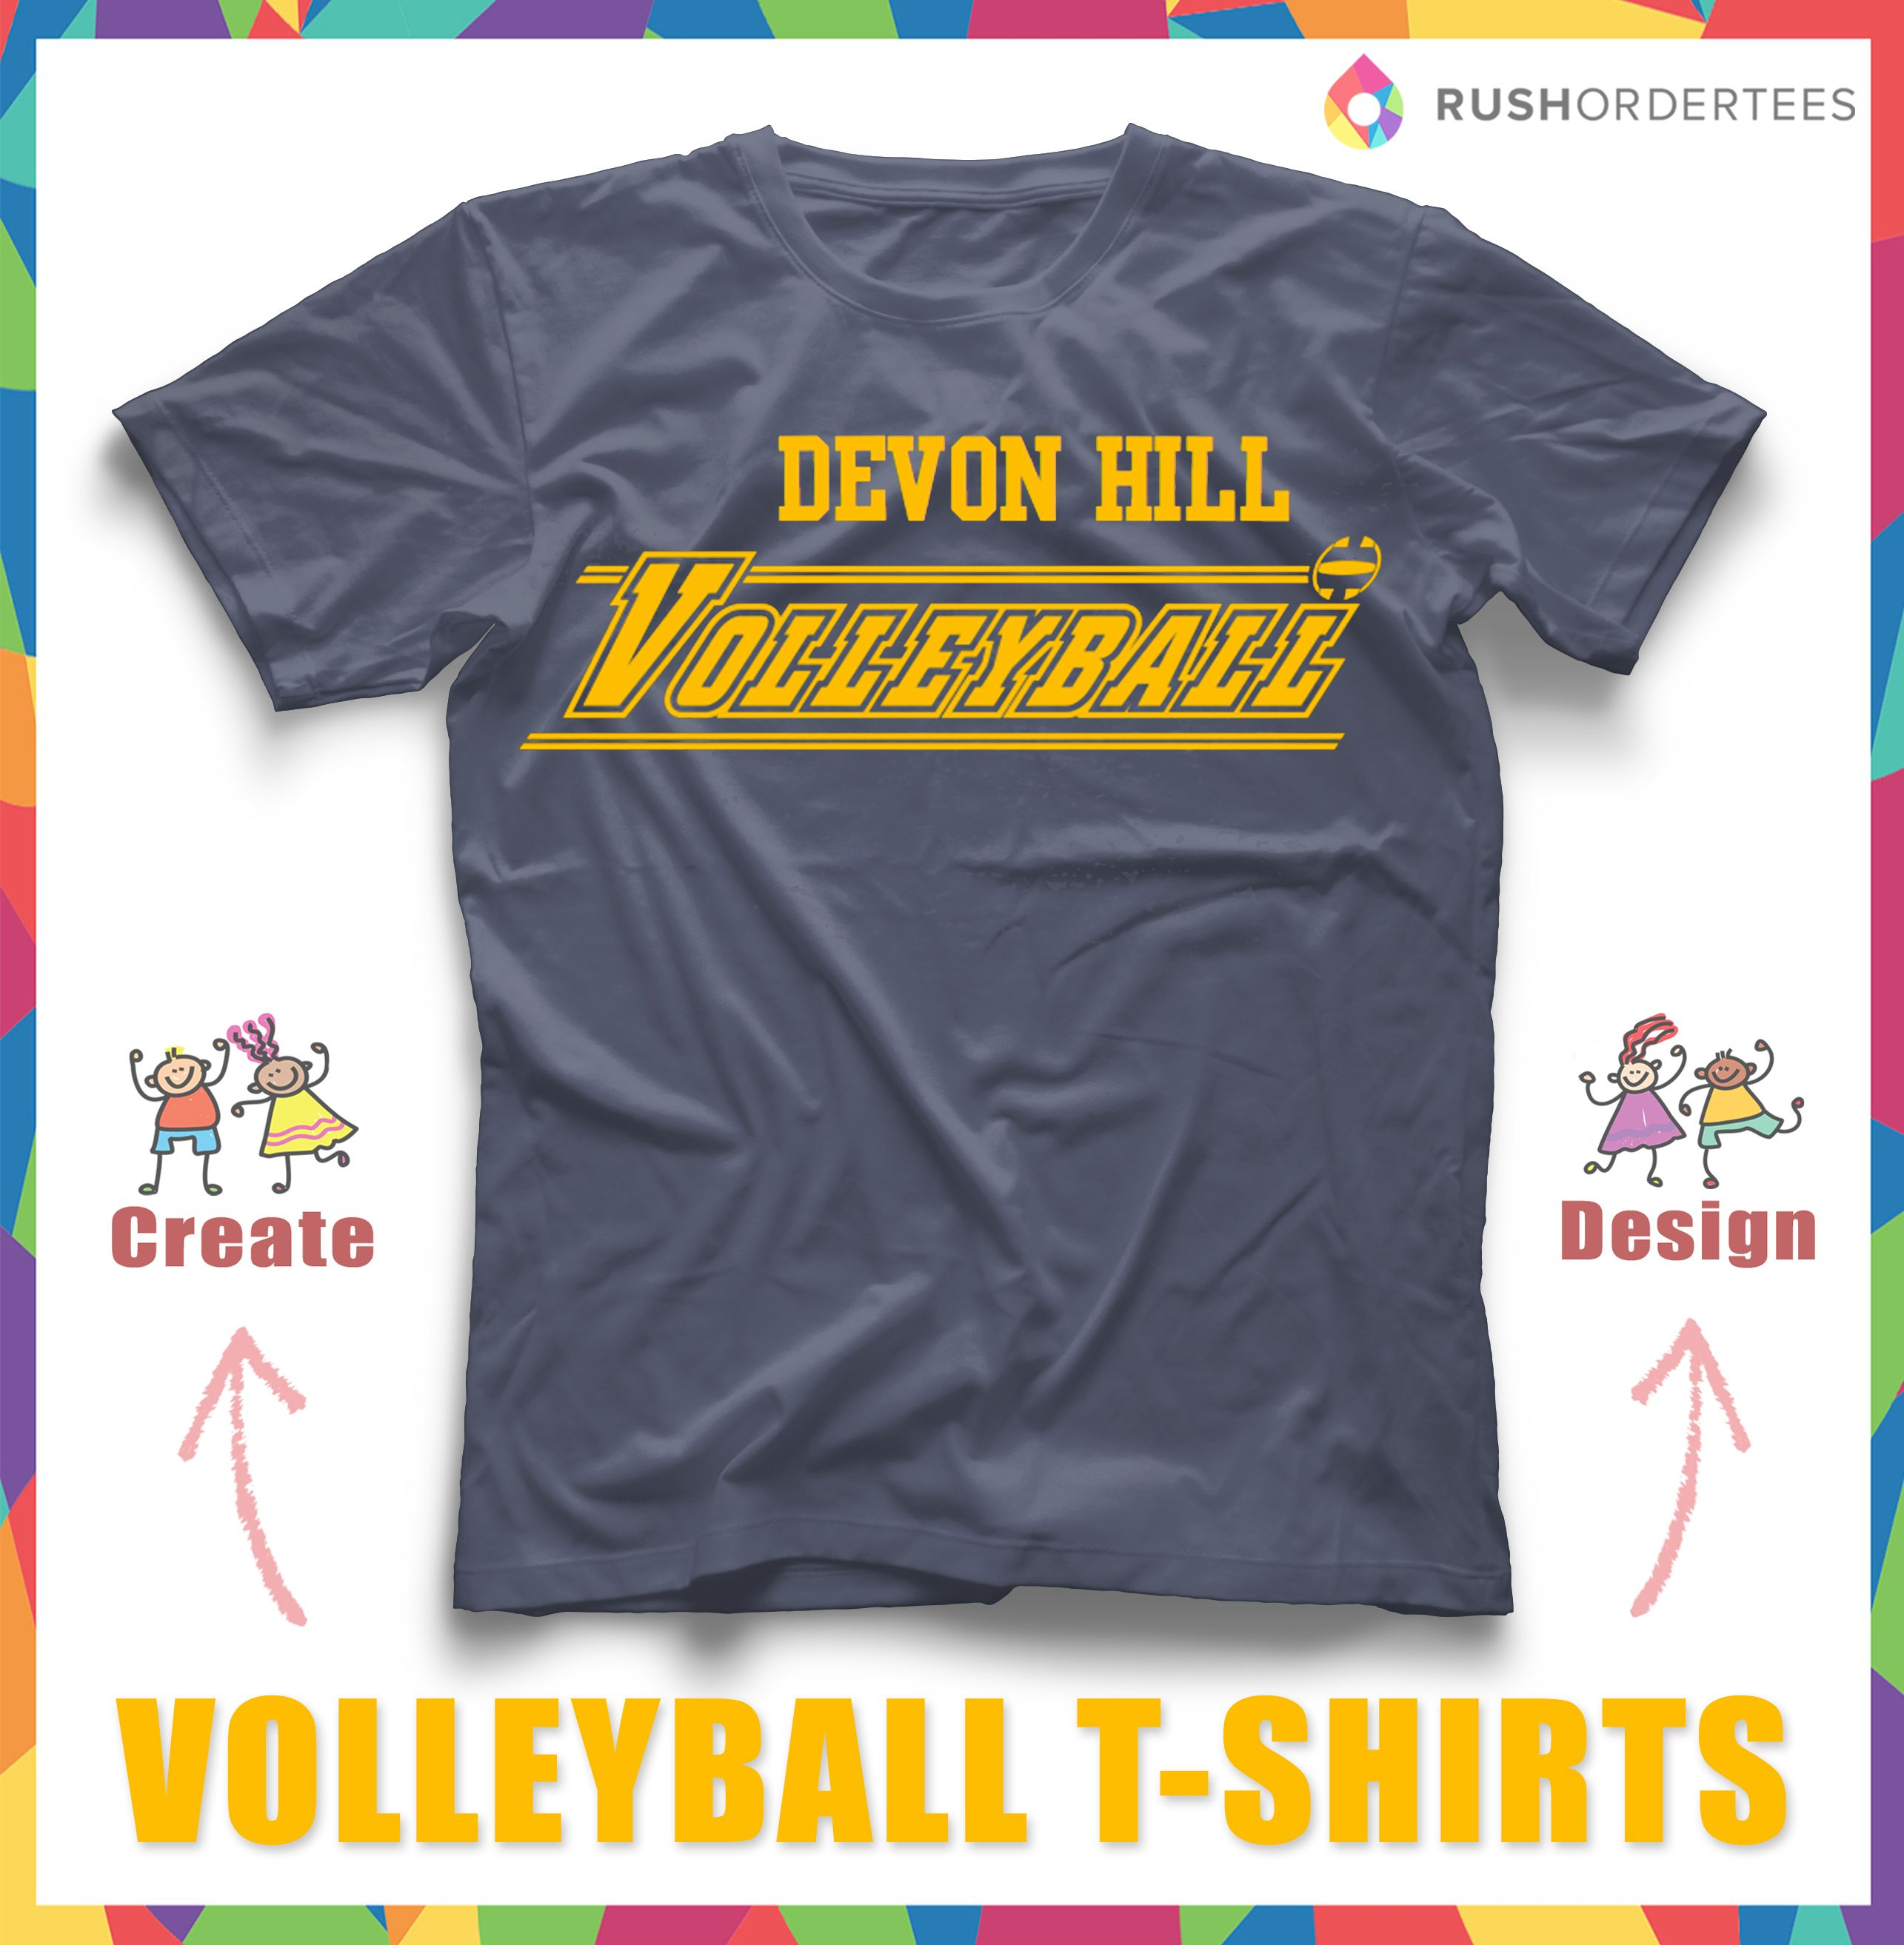 Volleyball Custom T Shirt Design Create And Edit Your Team Name With Our Online Design S T Shirt Design Template Volleyball Shirt Designs Custom Tshirt Design